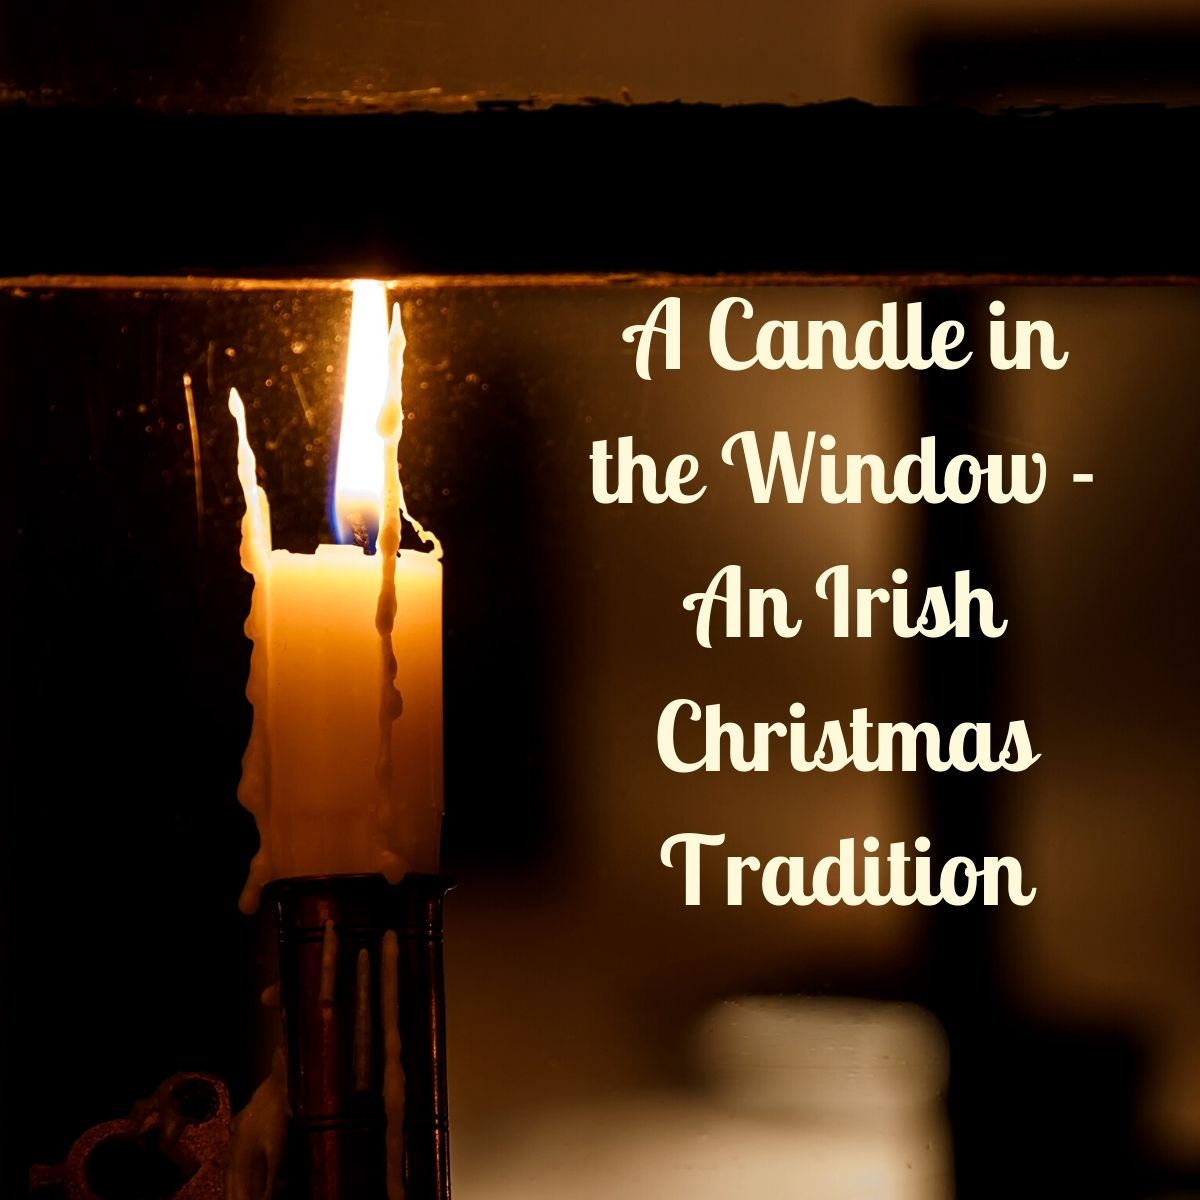 A candle flame seen through a window frame at night with text